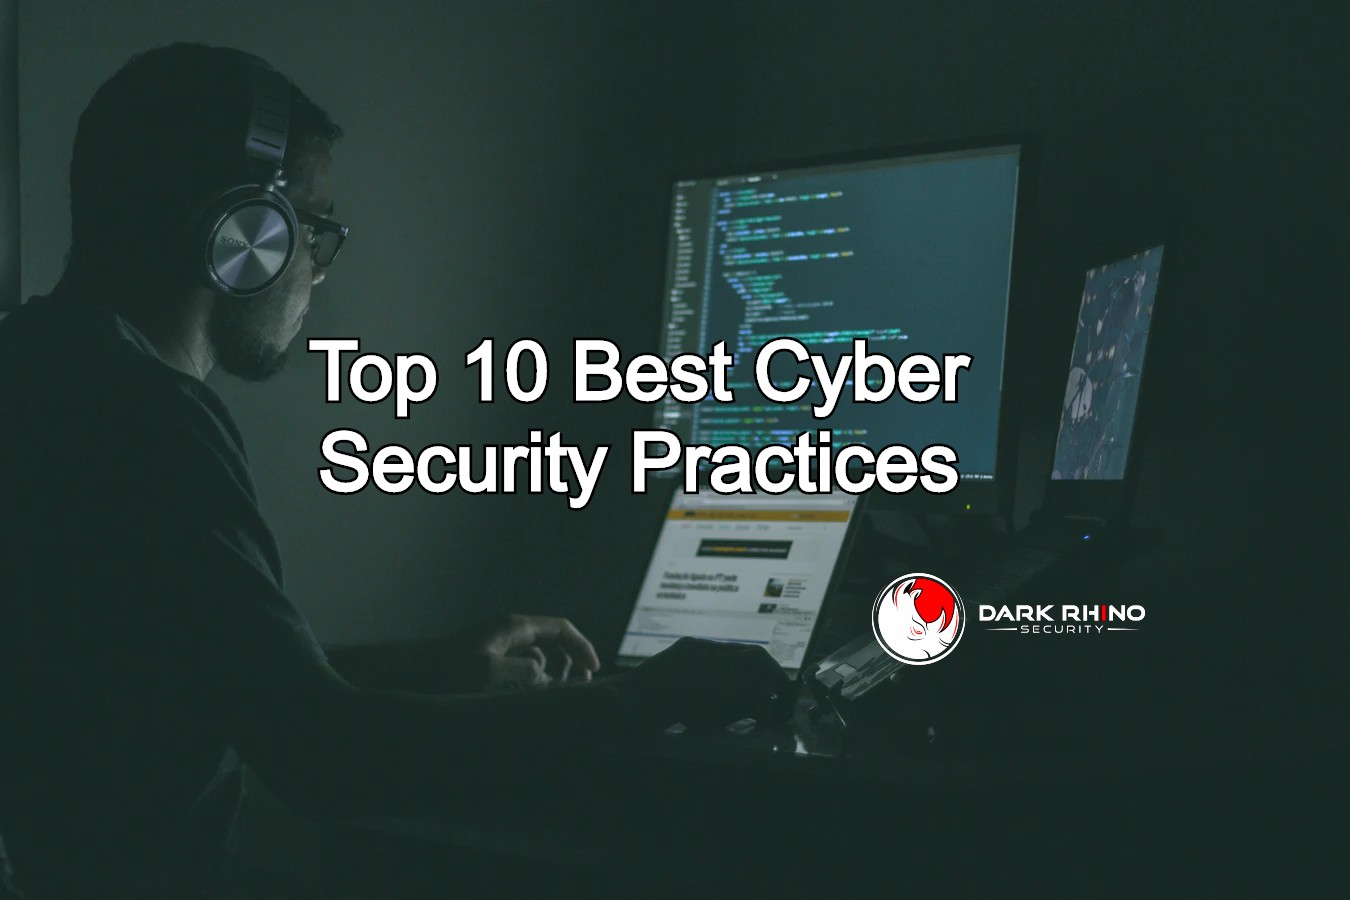 Top 10 best cyber security practices with Dark Rhino Security on man with earphones staring at computer screens background